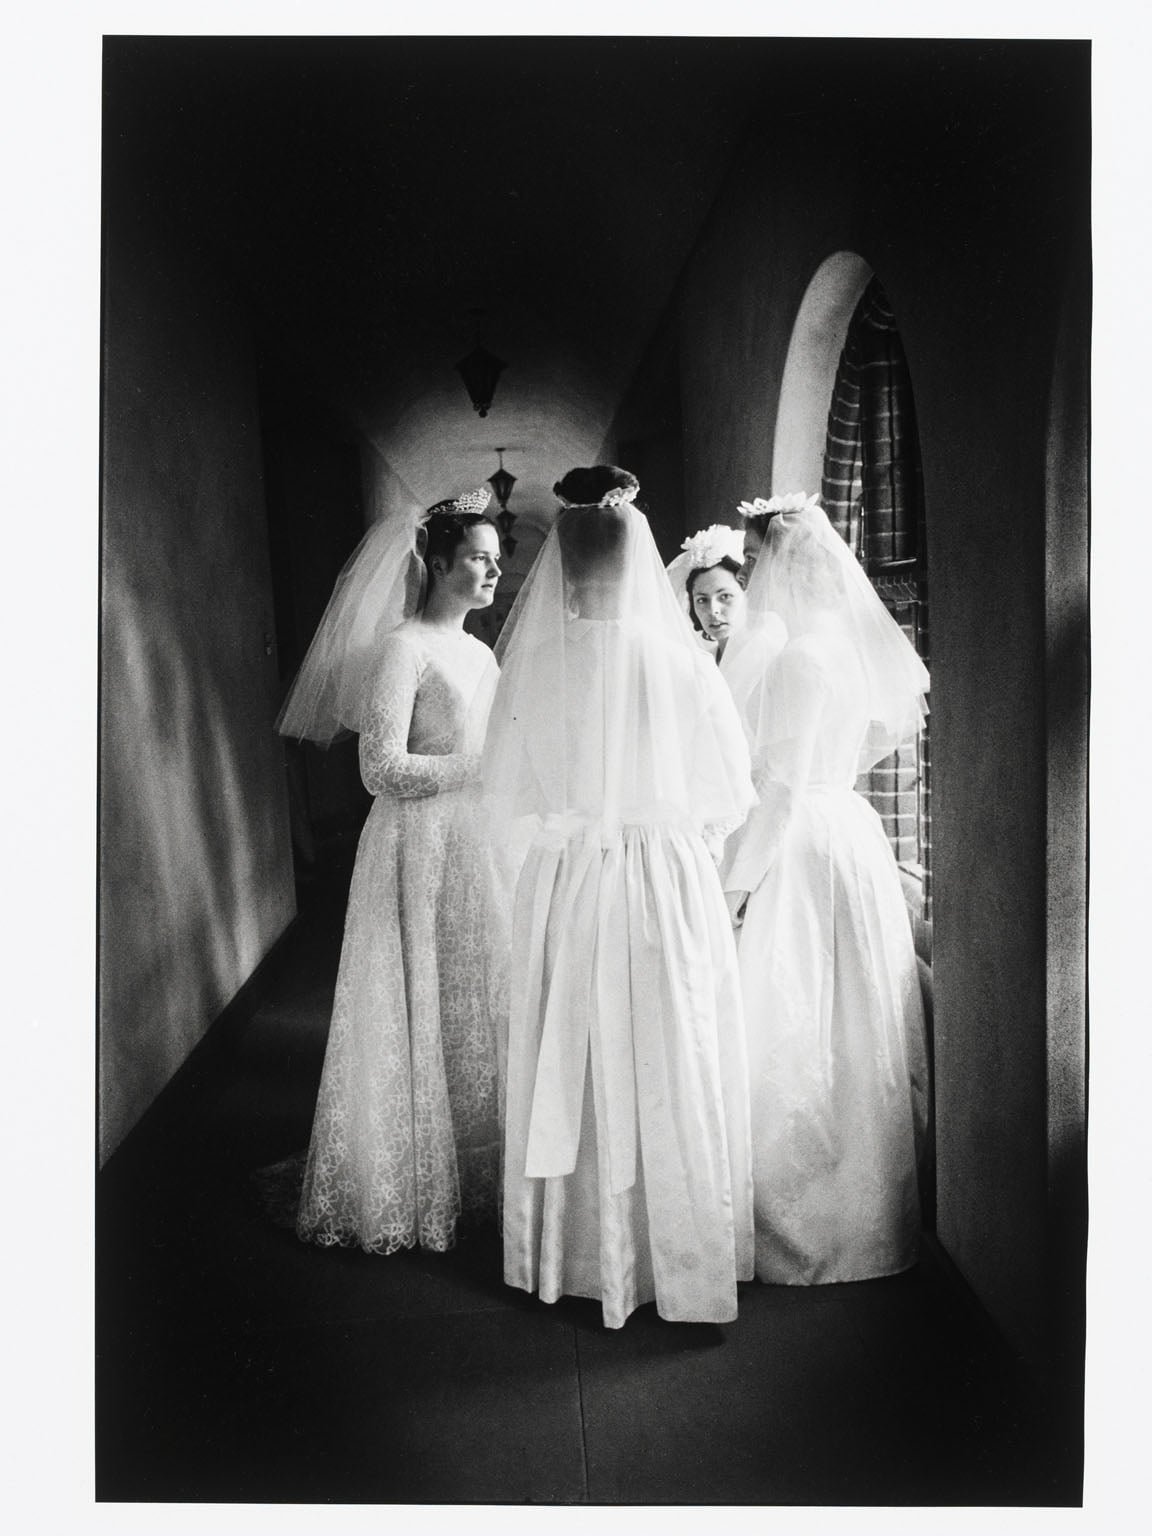 A meeting of brides of Christ on their wedding day to their Lord at the nunnery in Godalming, Surrey, 1965